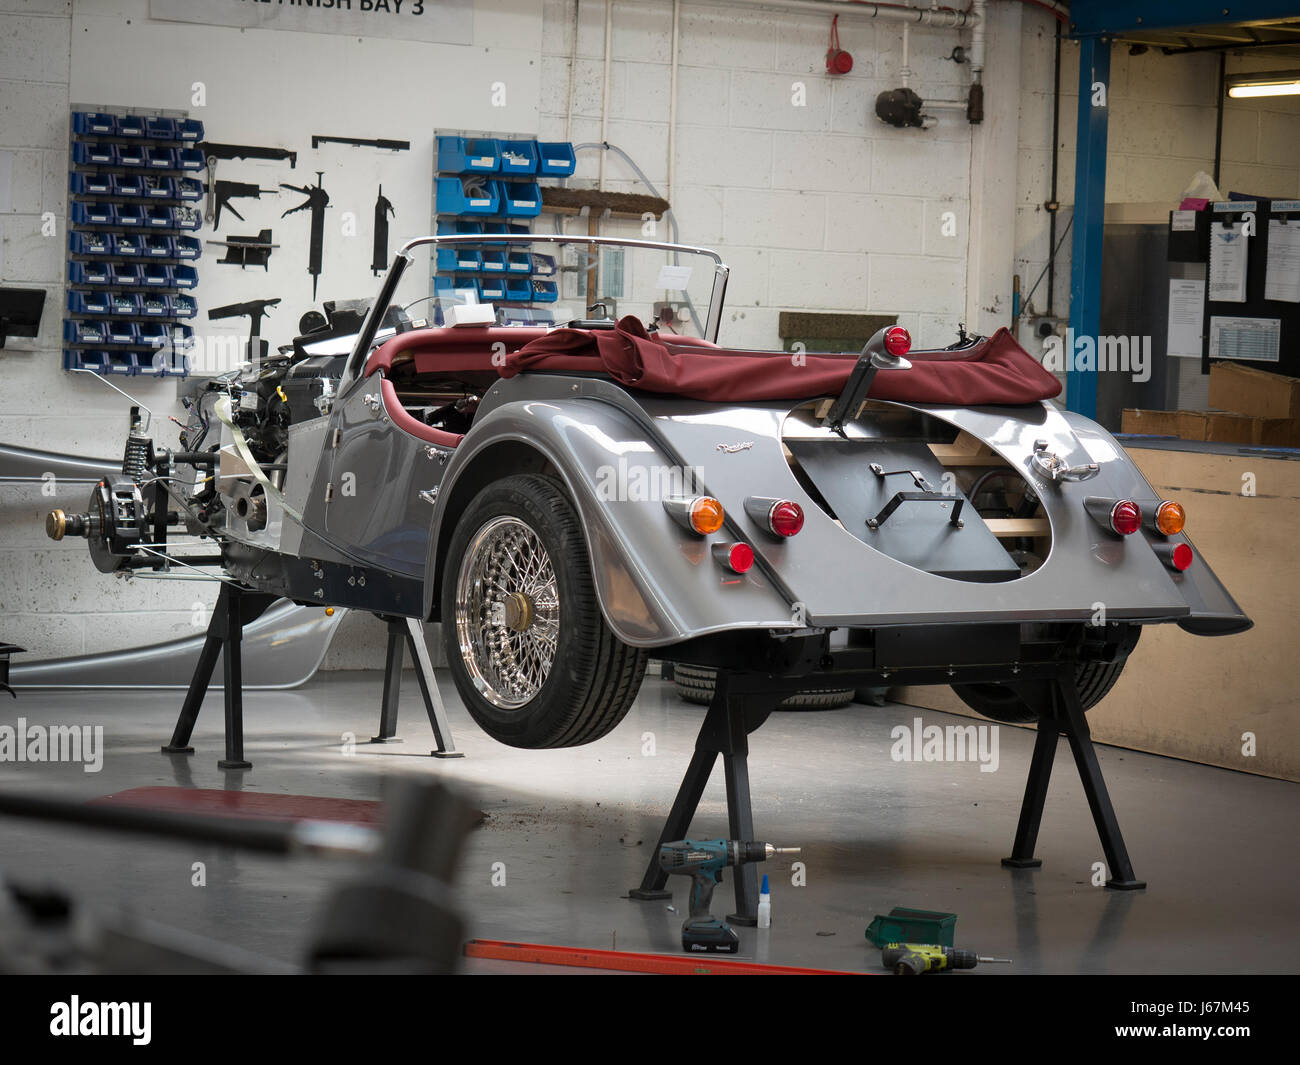 Morgan Motor Cars are still made in Malvern, England much as they ...